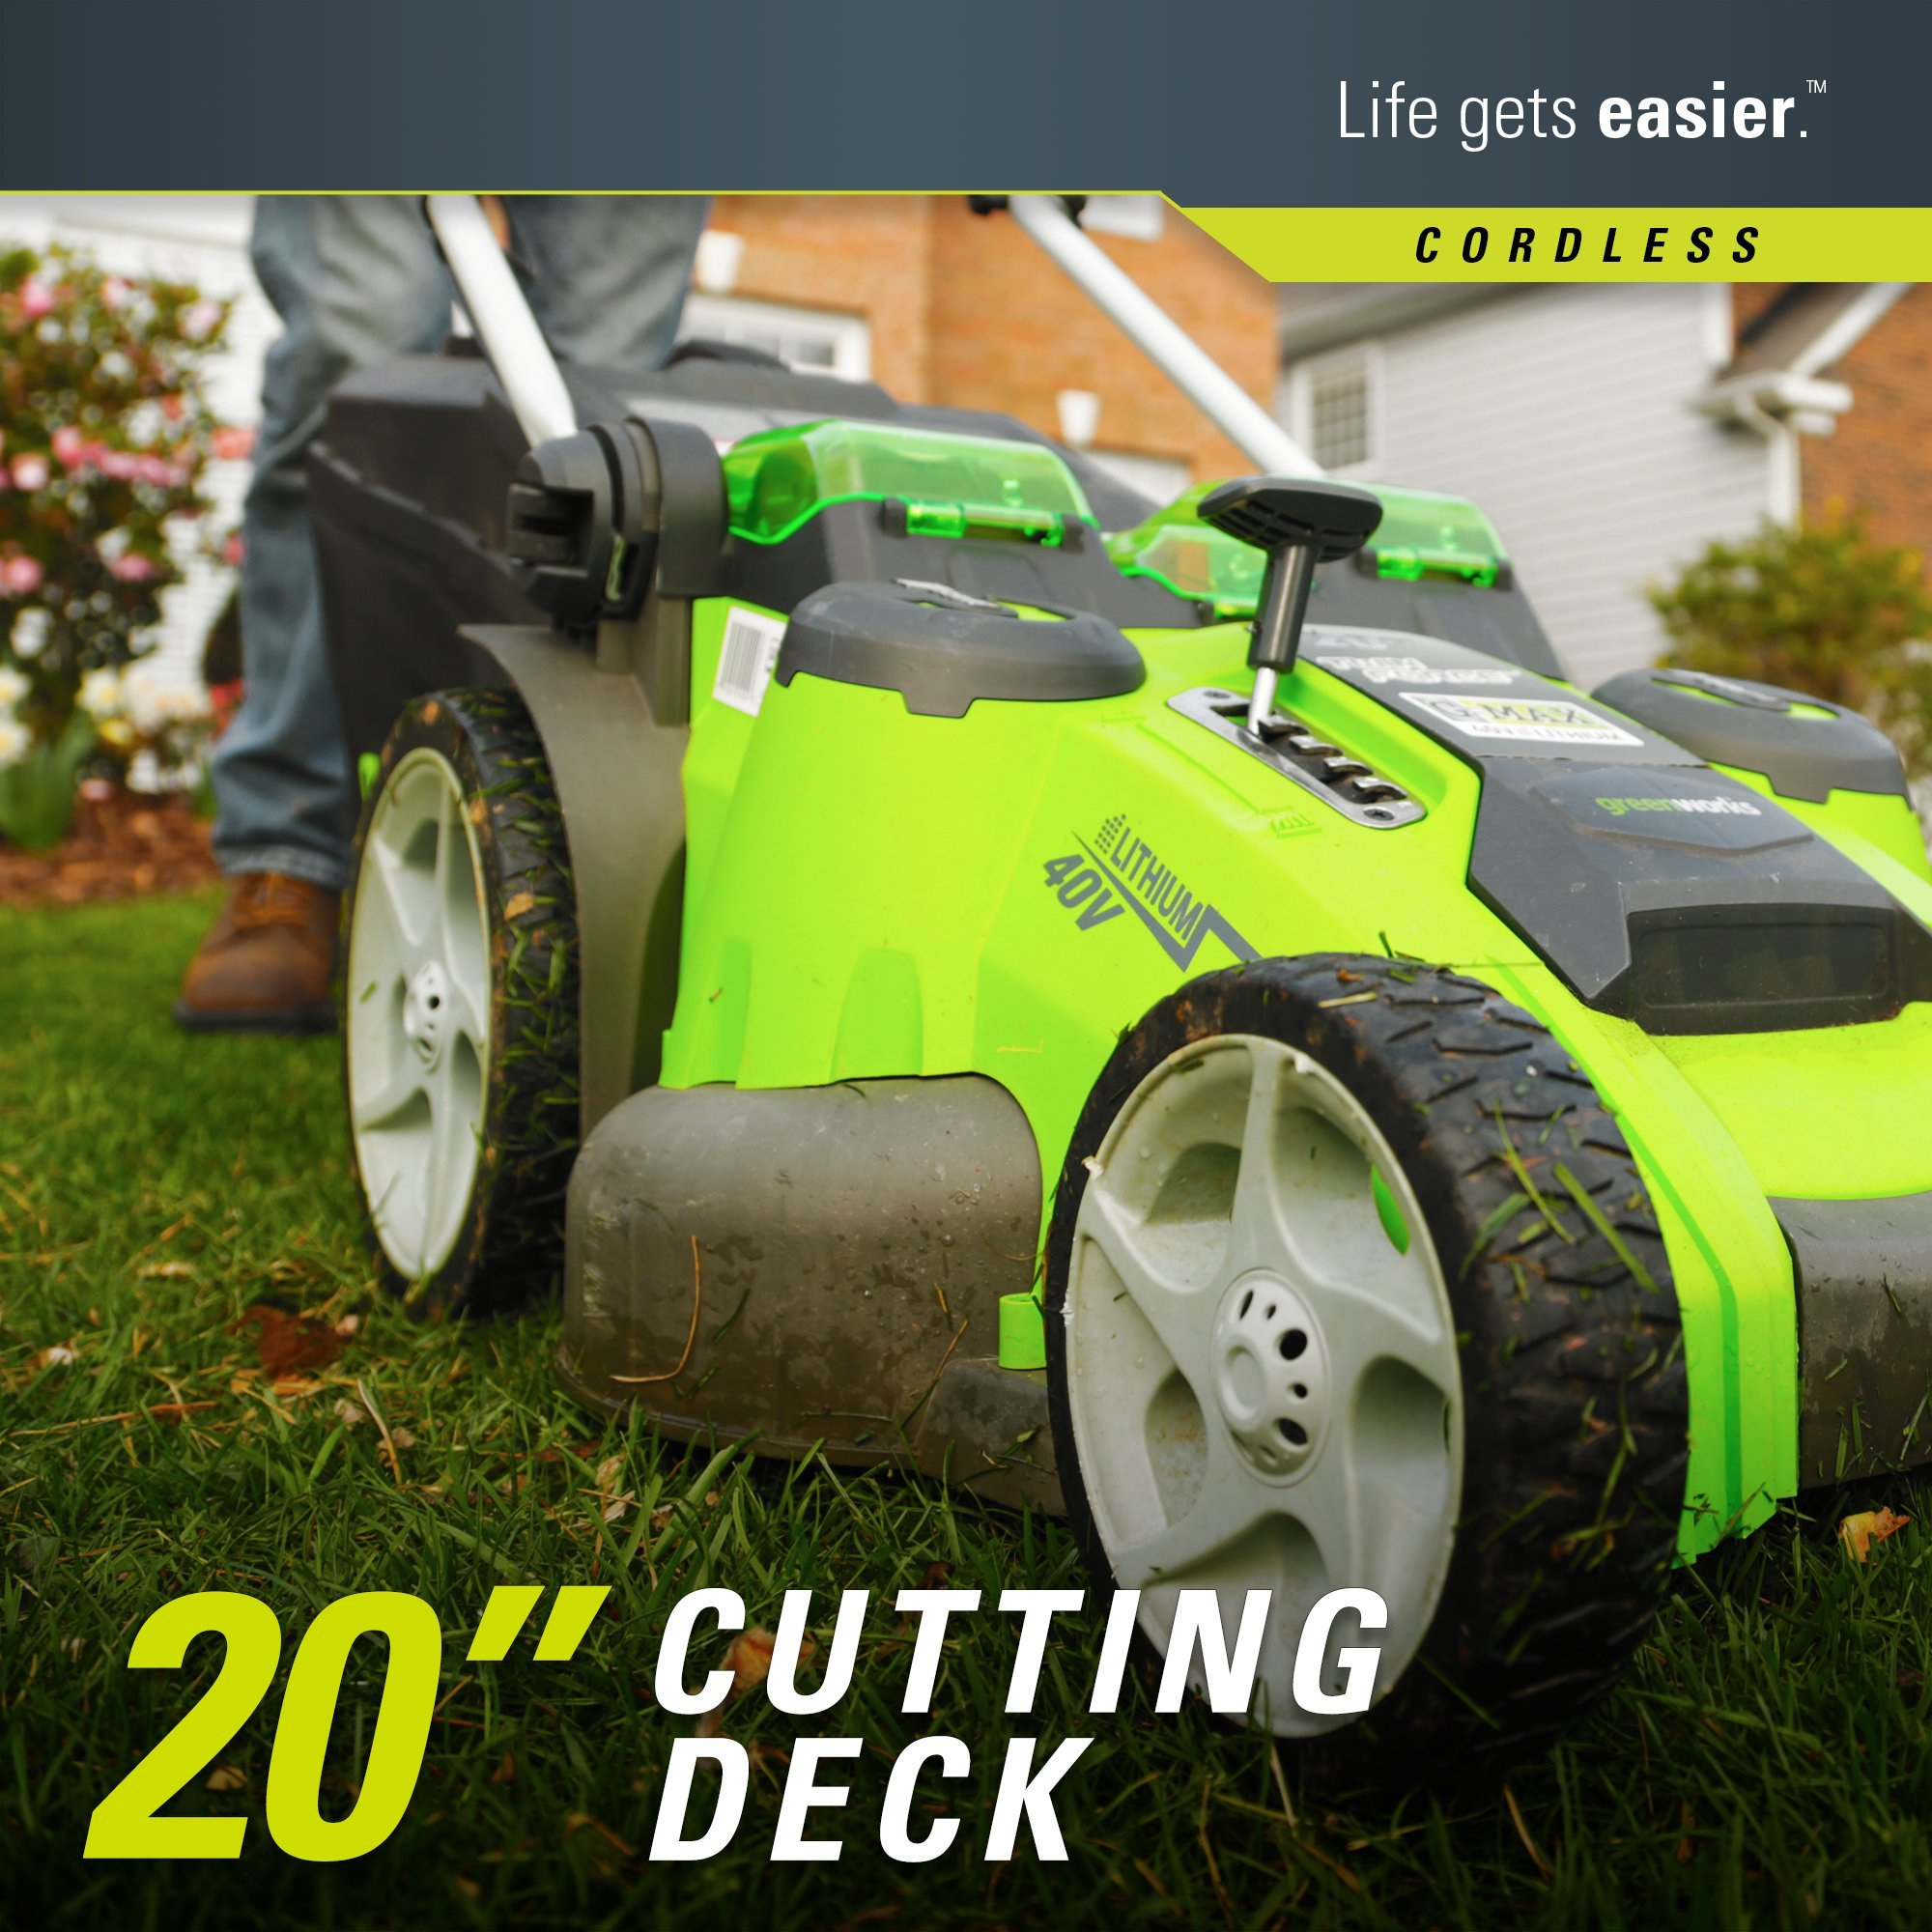 Greenworks 20-Inch 40V Twin Force Cordless Lawn Mower, 4.0 AH & 2.0 AH Batteries Included 25302 by Greenworks (Image #3)